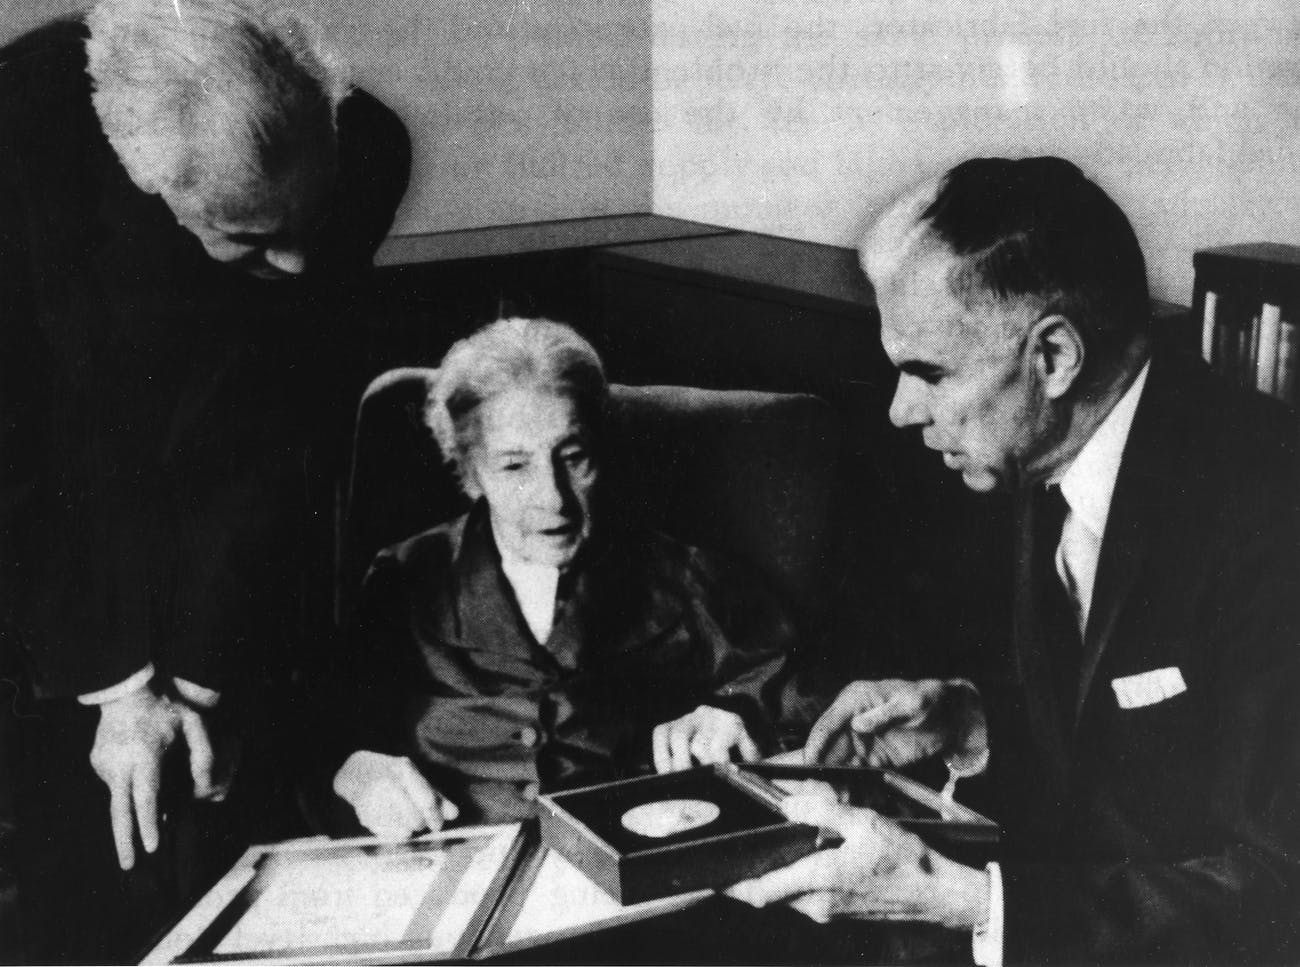 Meitner received the Enrico Fermi Award in 1966. Her nephew Otto Frisch is on the left.